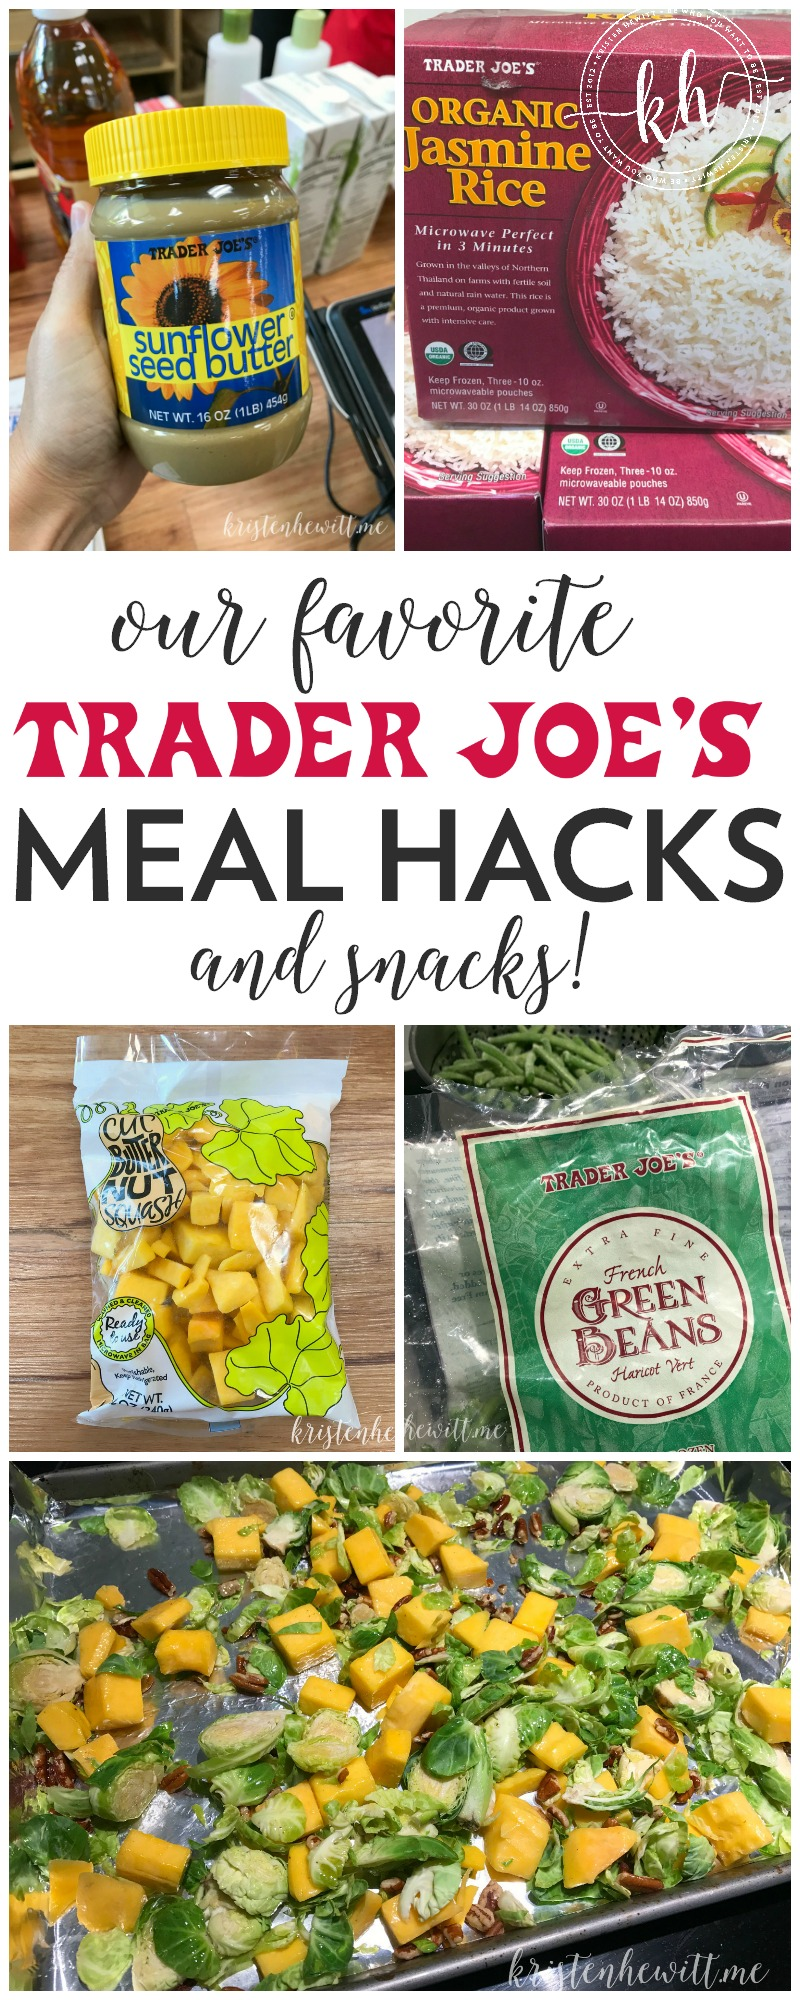 Looking for easy ways to make dinner simpler? Check out our favorite Trader Joe's meal hacks and snacks to help your busy family eat healthy again!